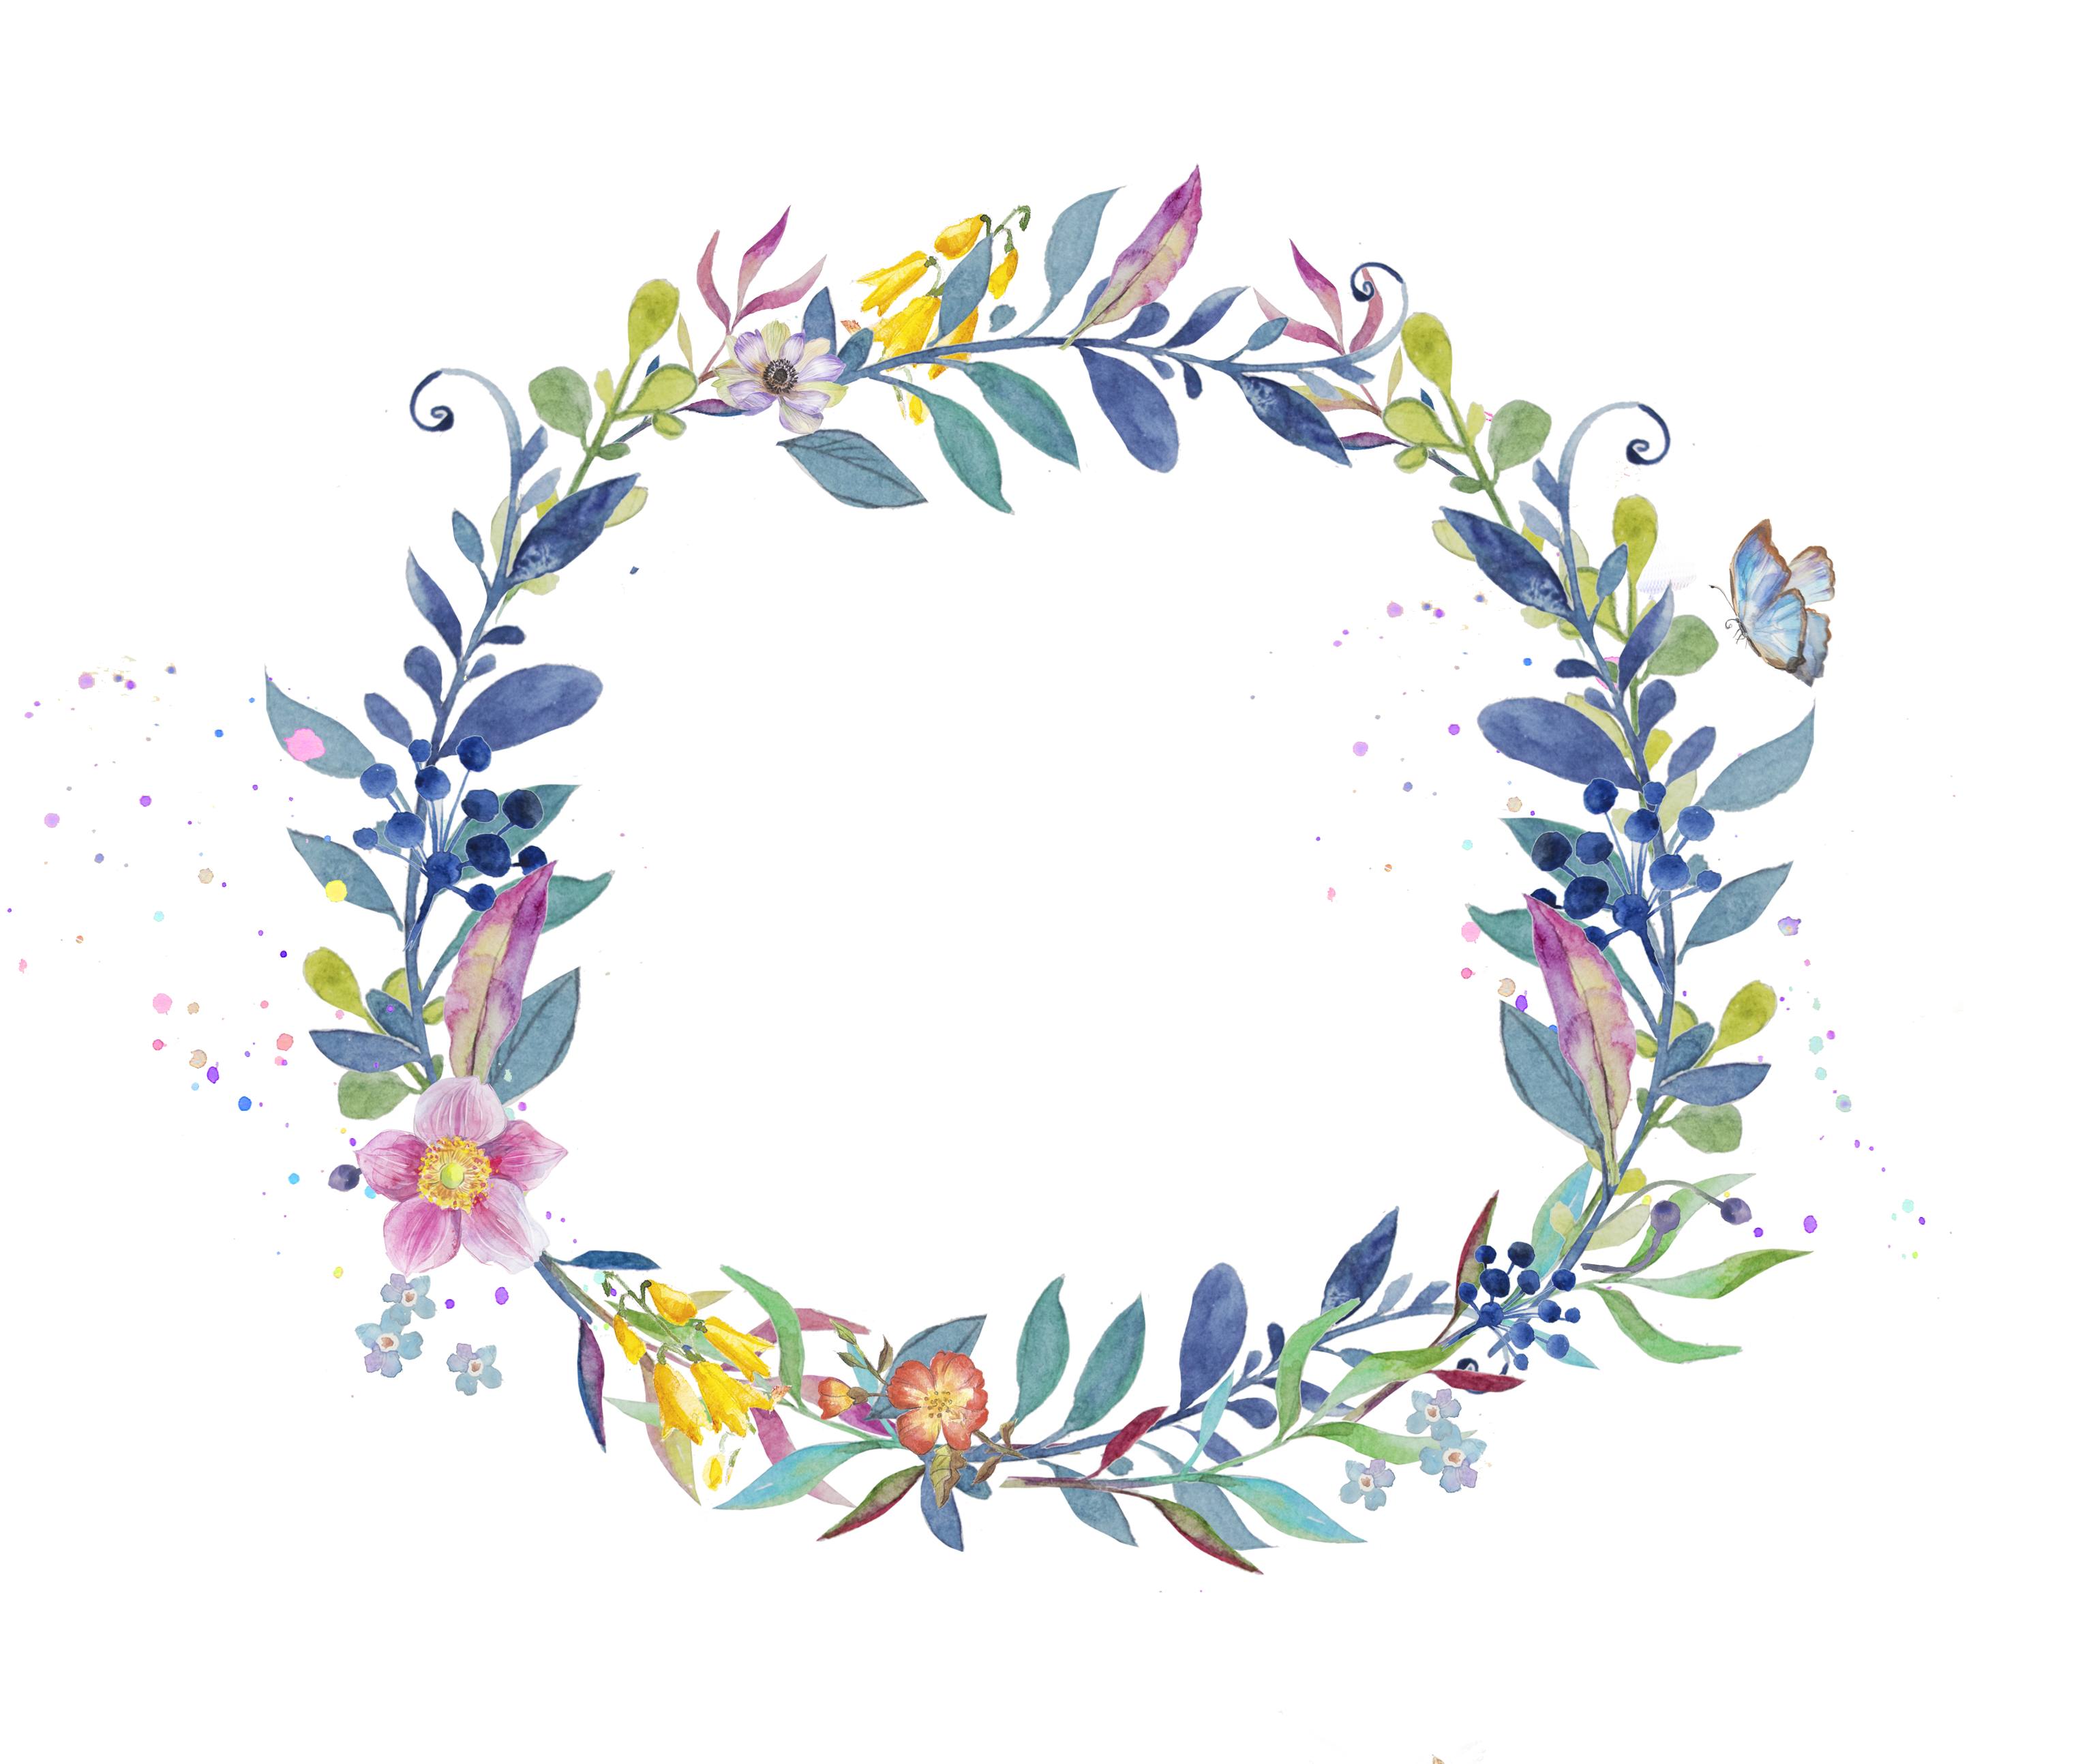 Garland clipart leaves. Wreath watercolor painting clip